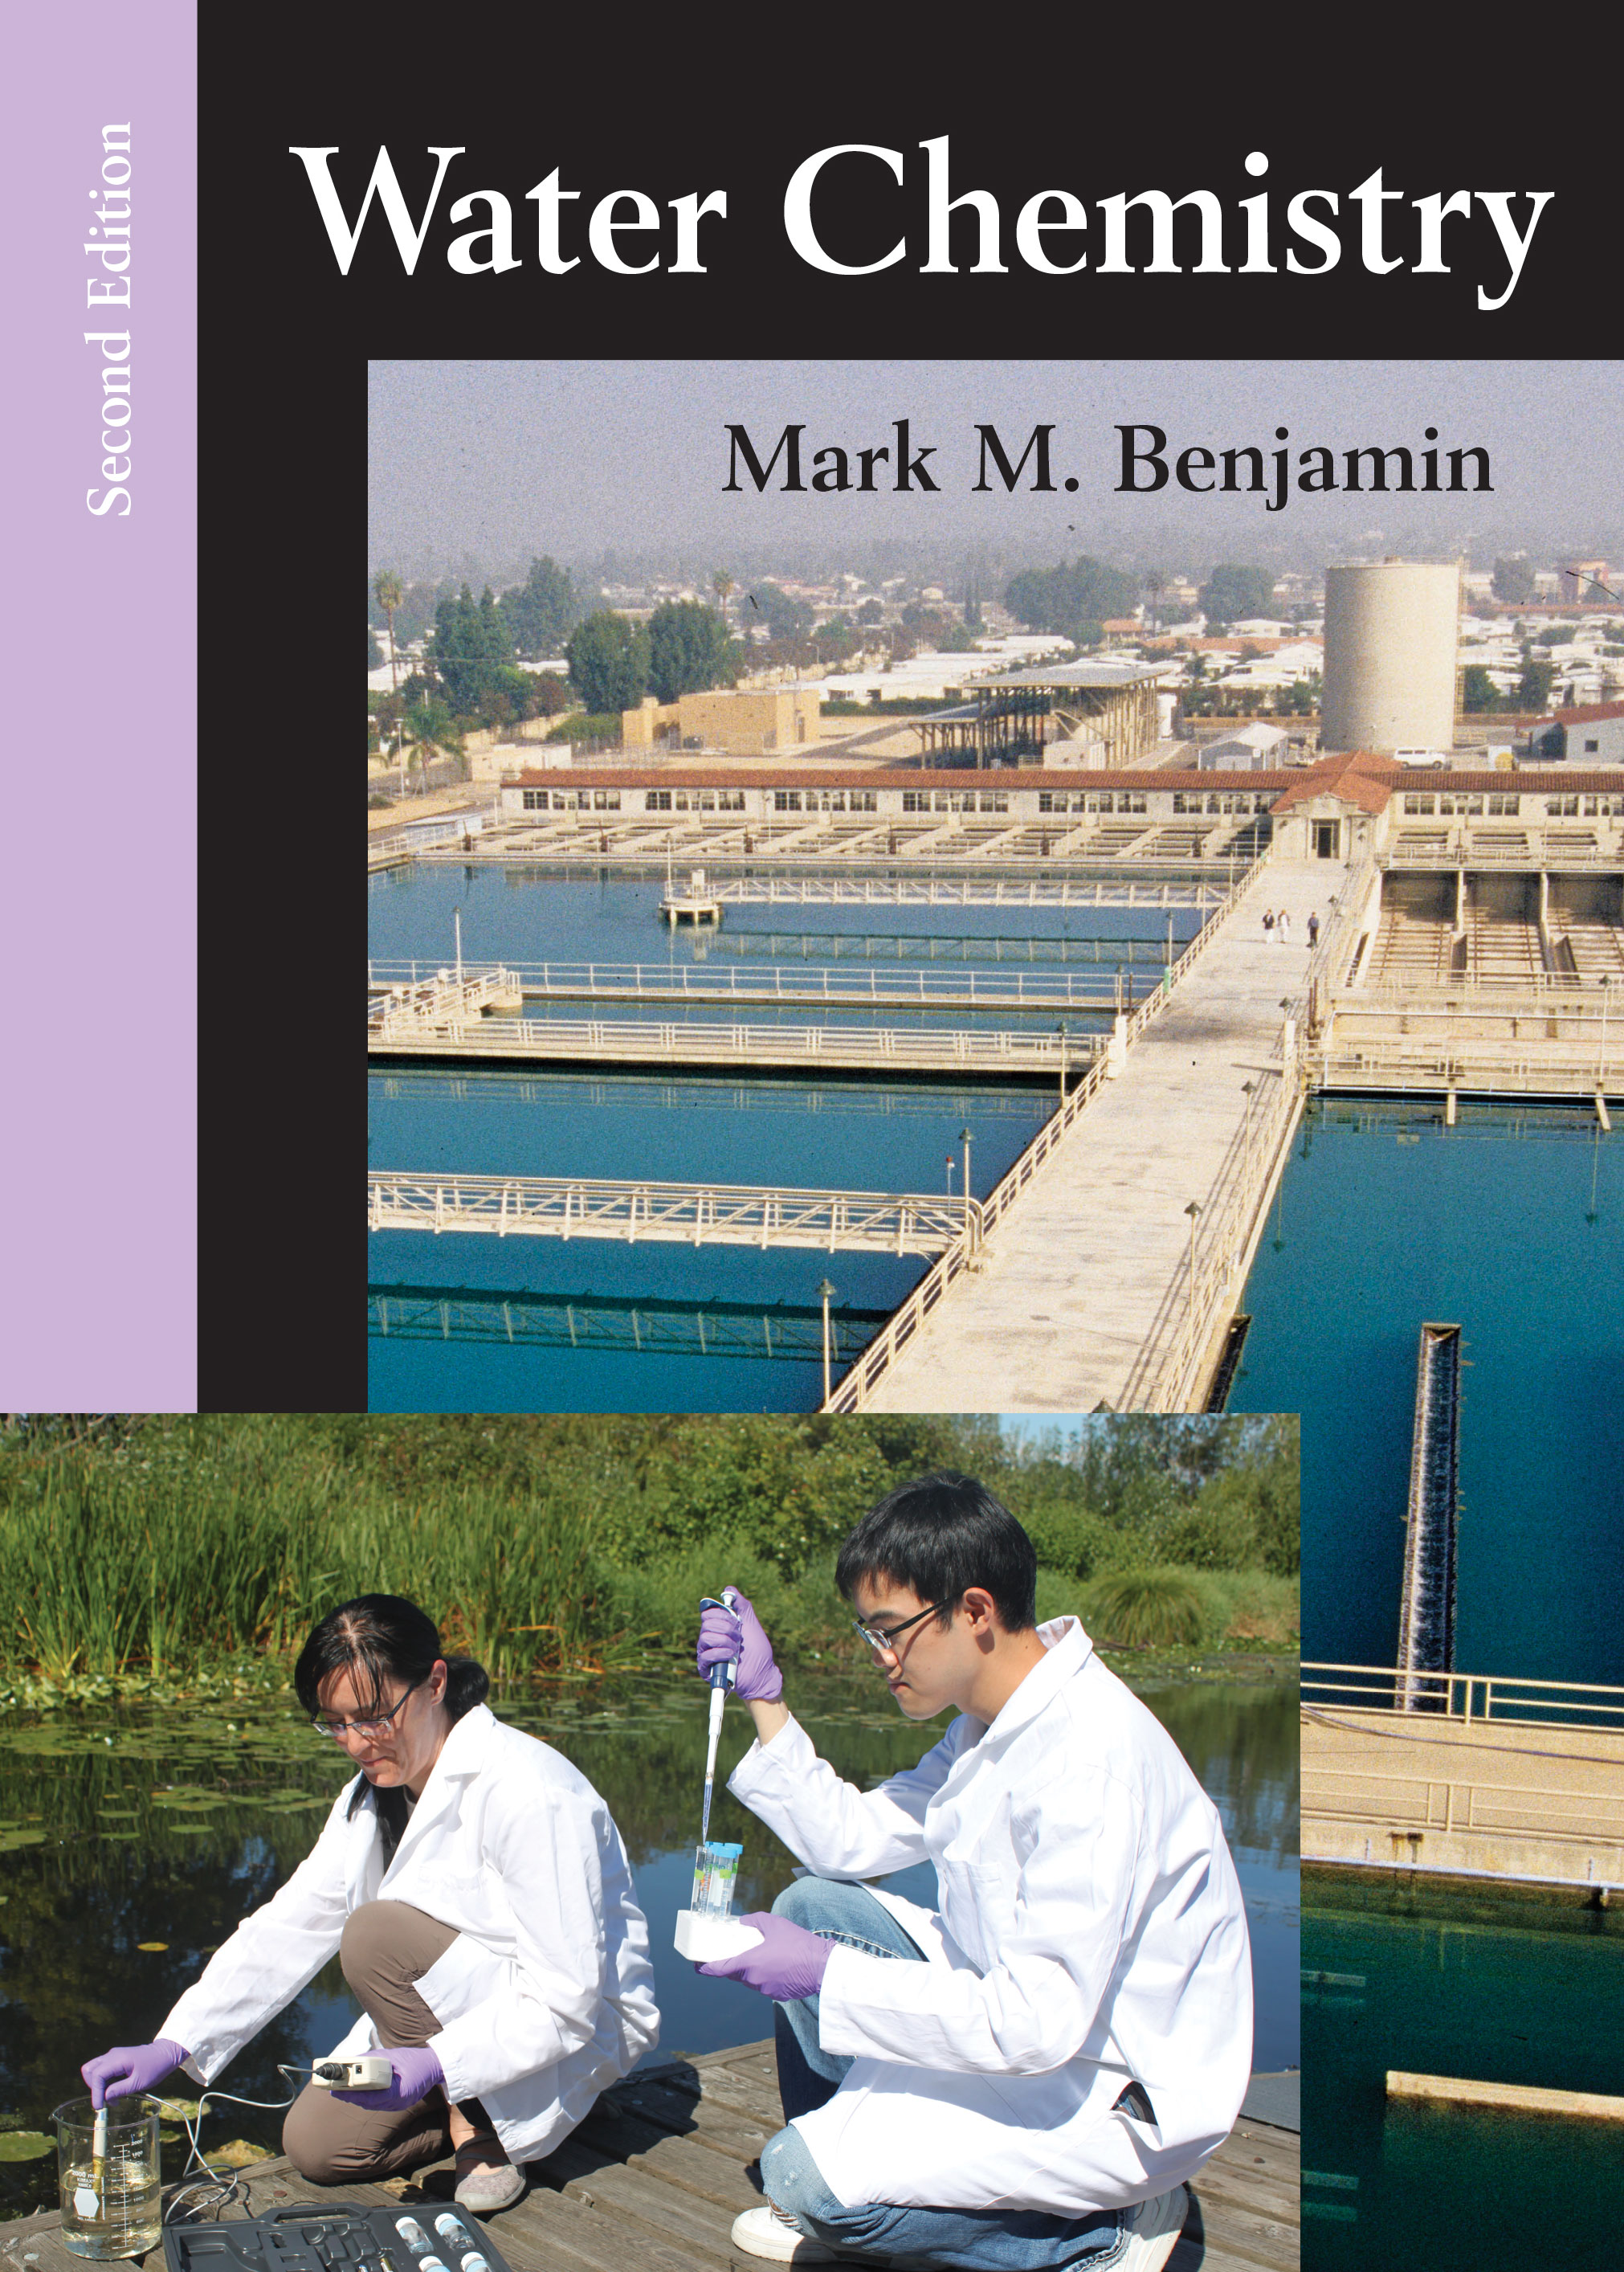 Water Chemistry: Second Edition by Mark M. Benjamin